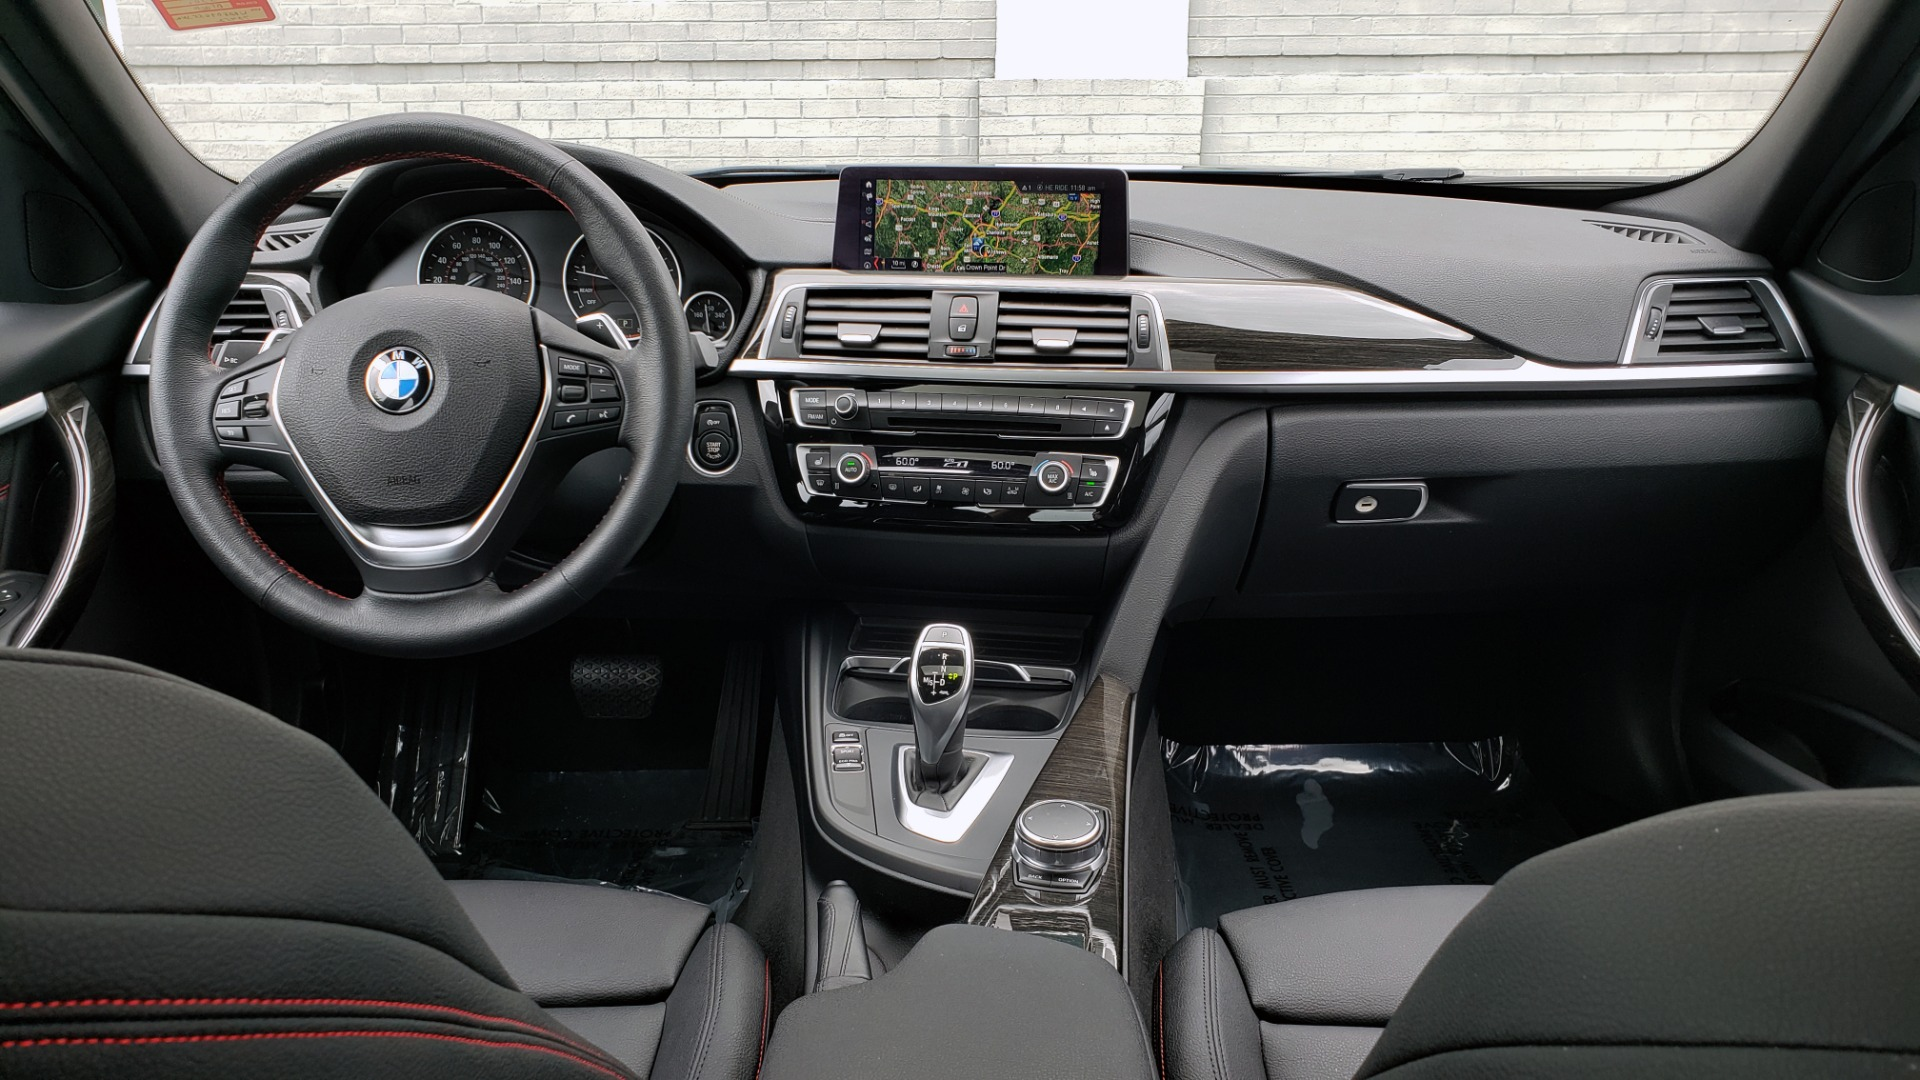 Used 2018 BMW 3 SERIES 330IXDRIVE / CONV PKG / NAV / SUNROOF / HTD STS / REARVIEW for sale $26,552 at Formula Imports in Charlotte NC 28227 76